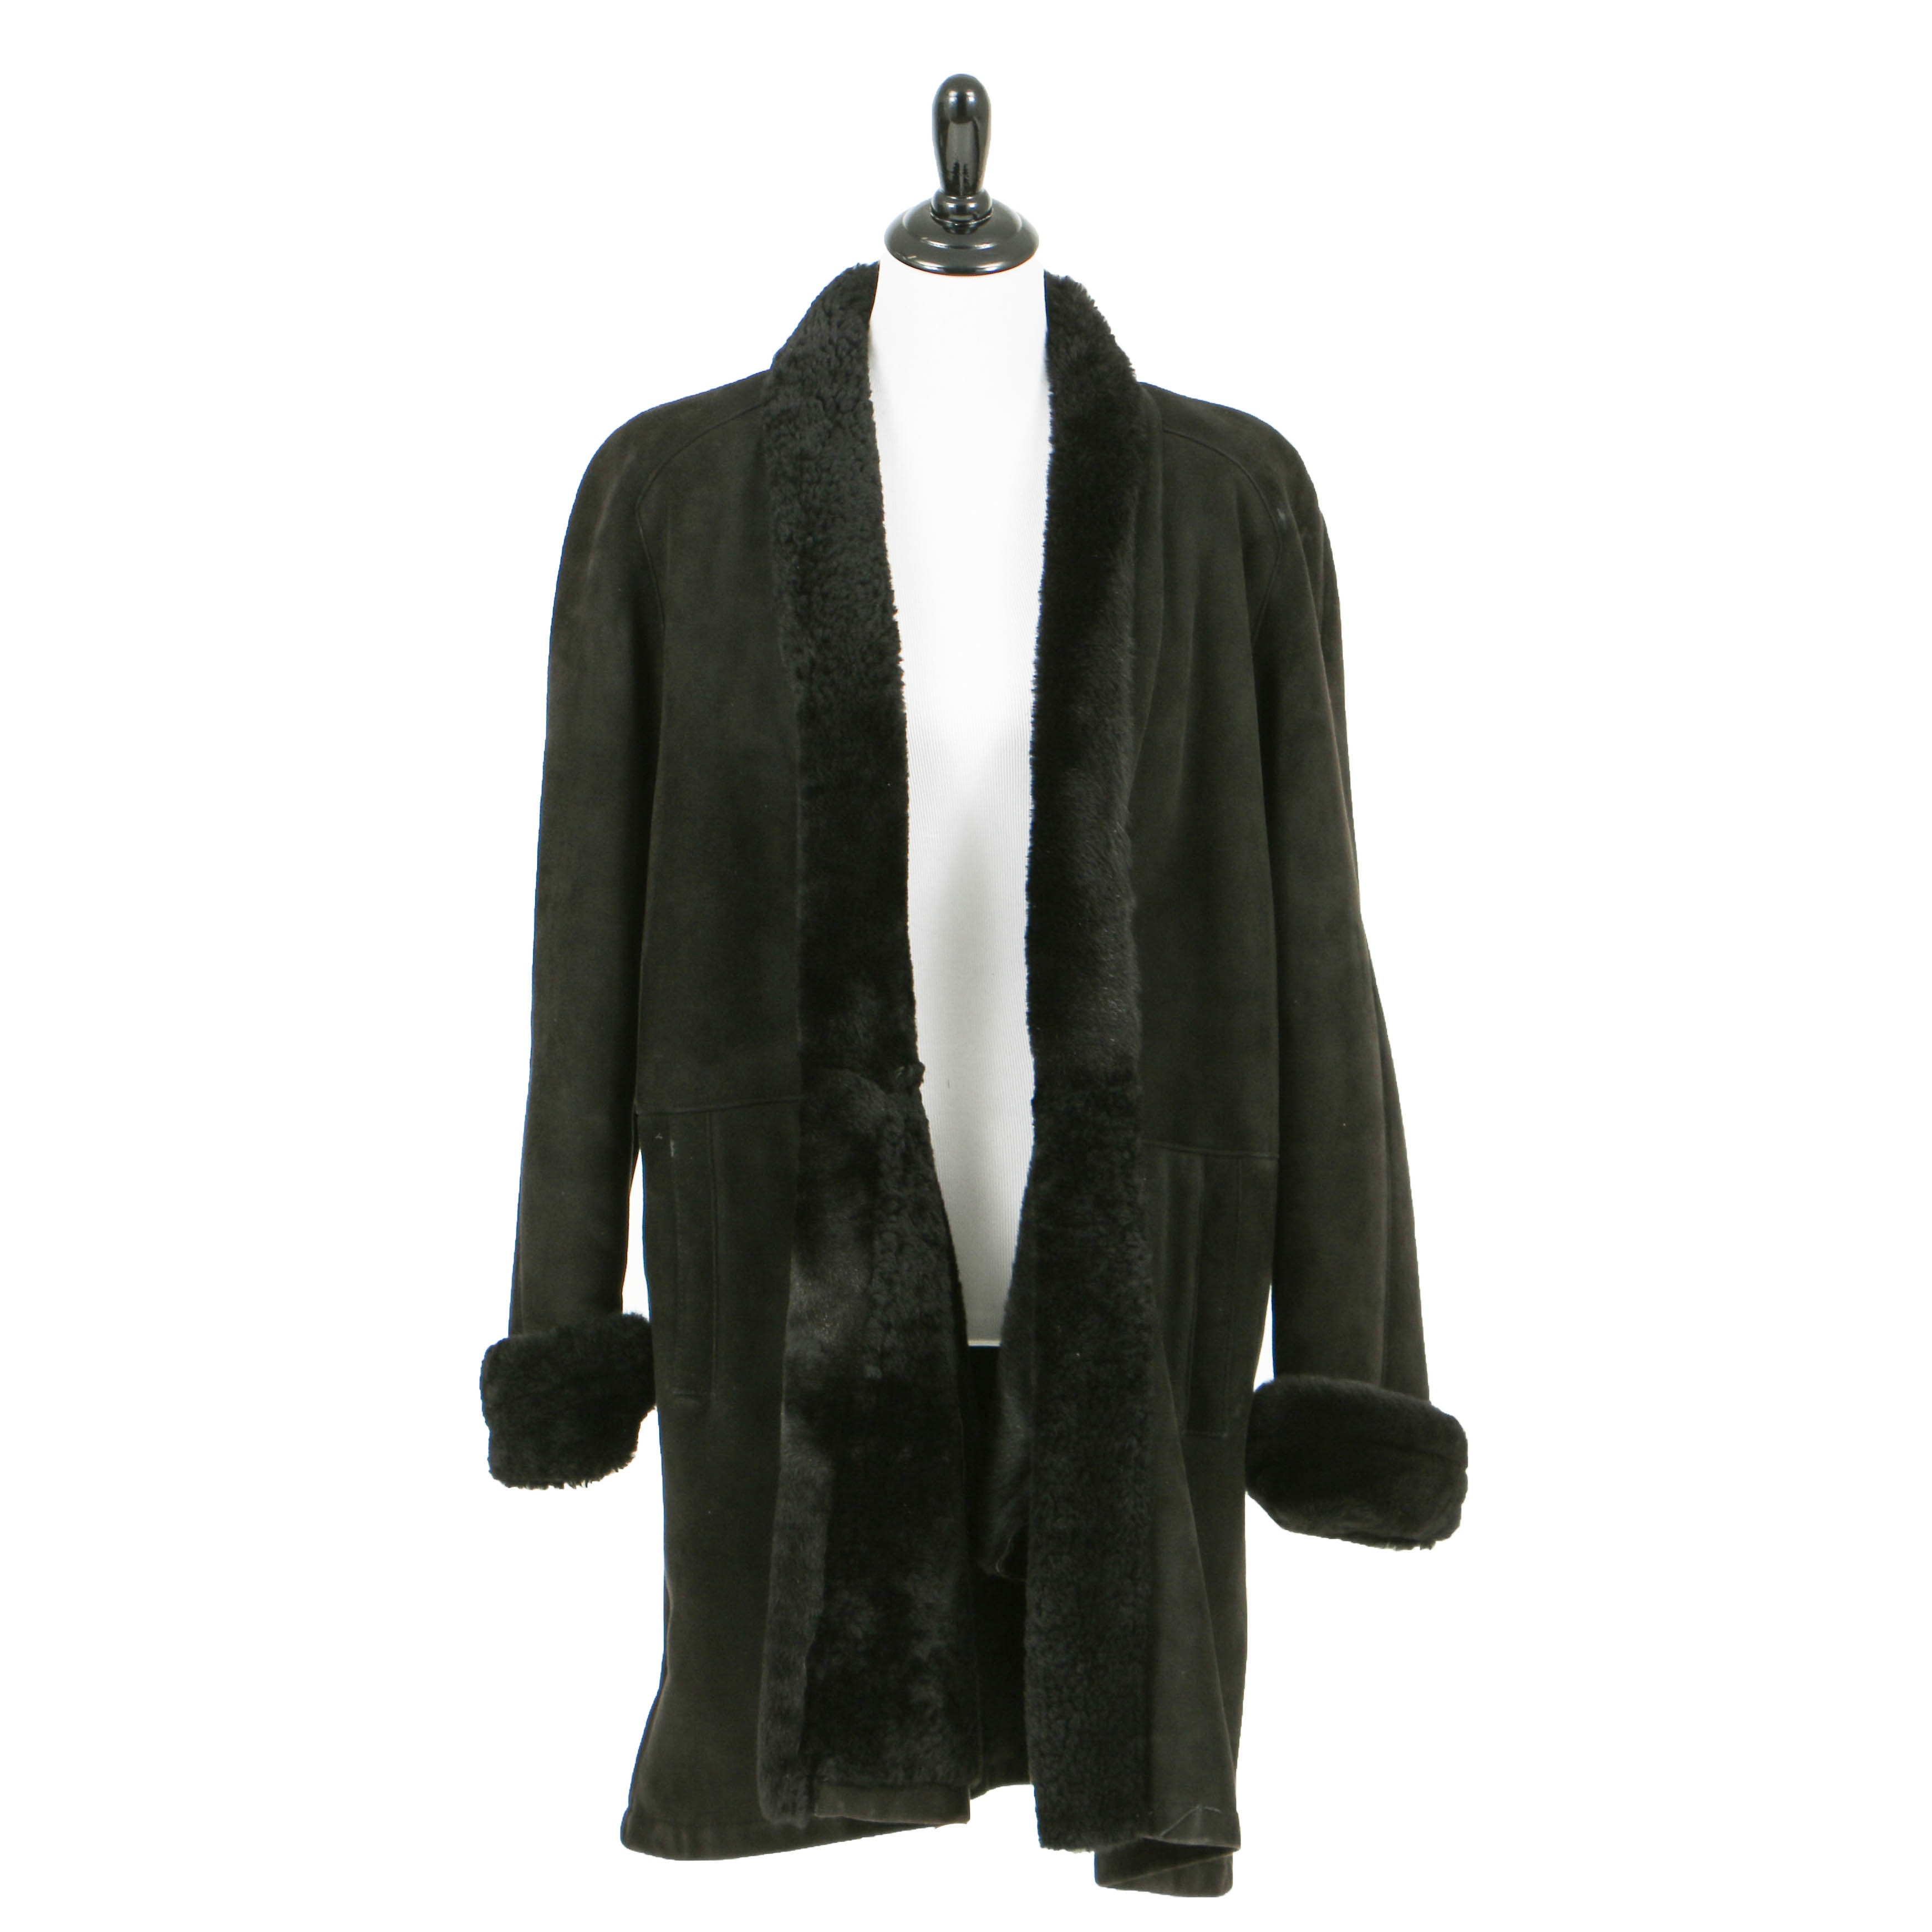 Black Suede Shearling Coat by Maxima